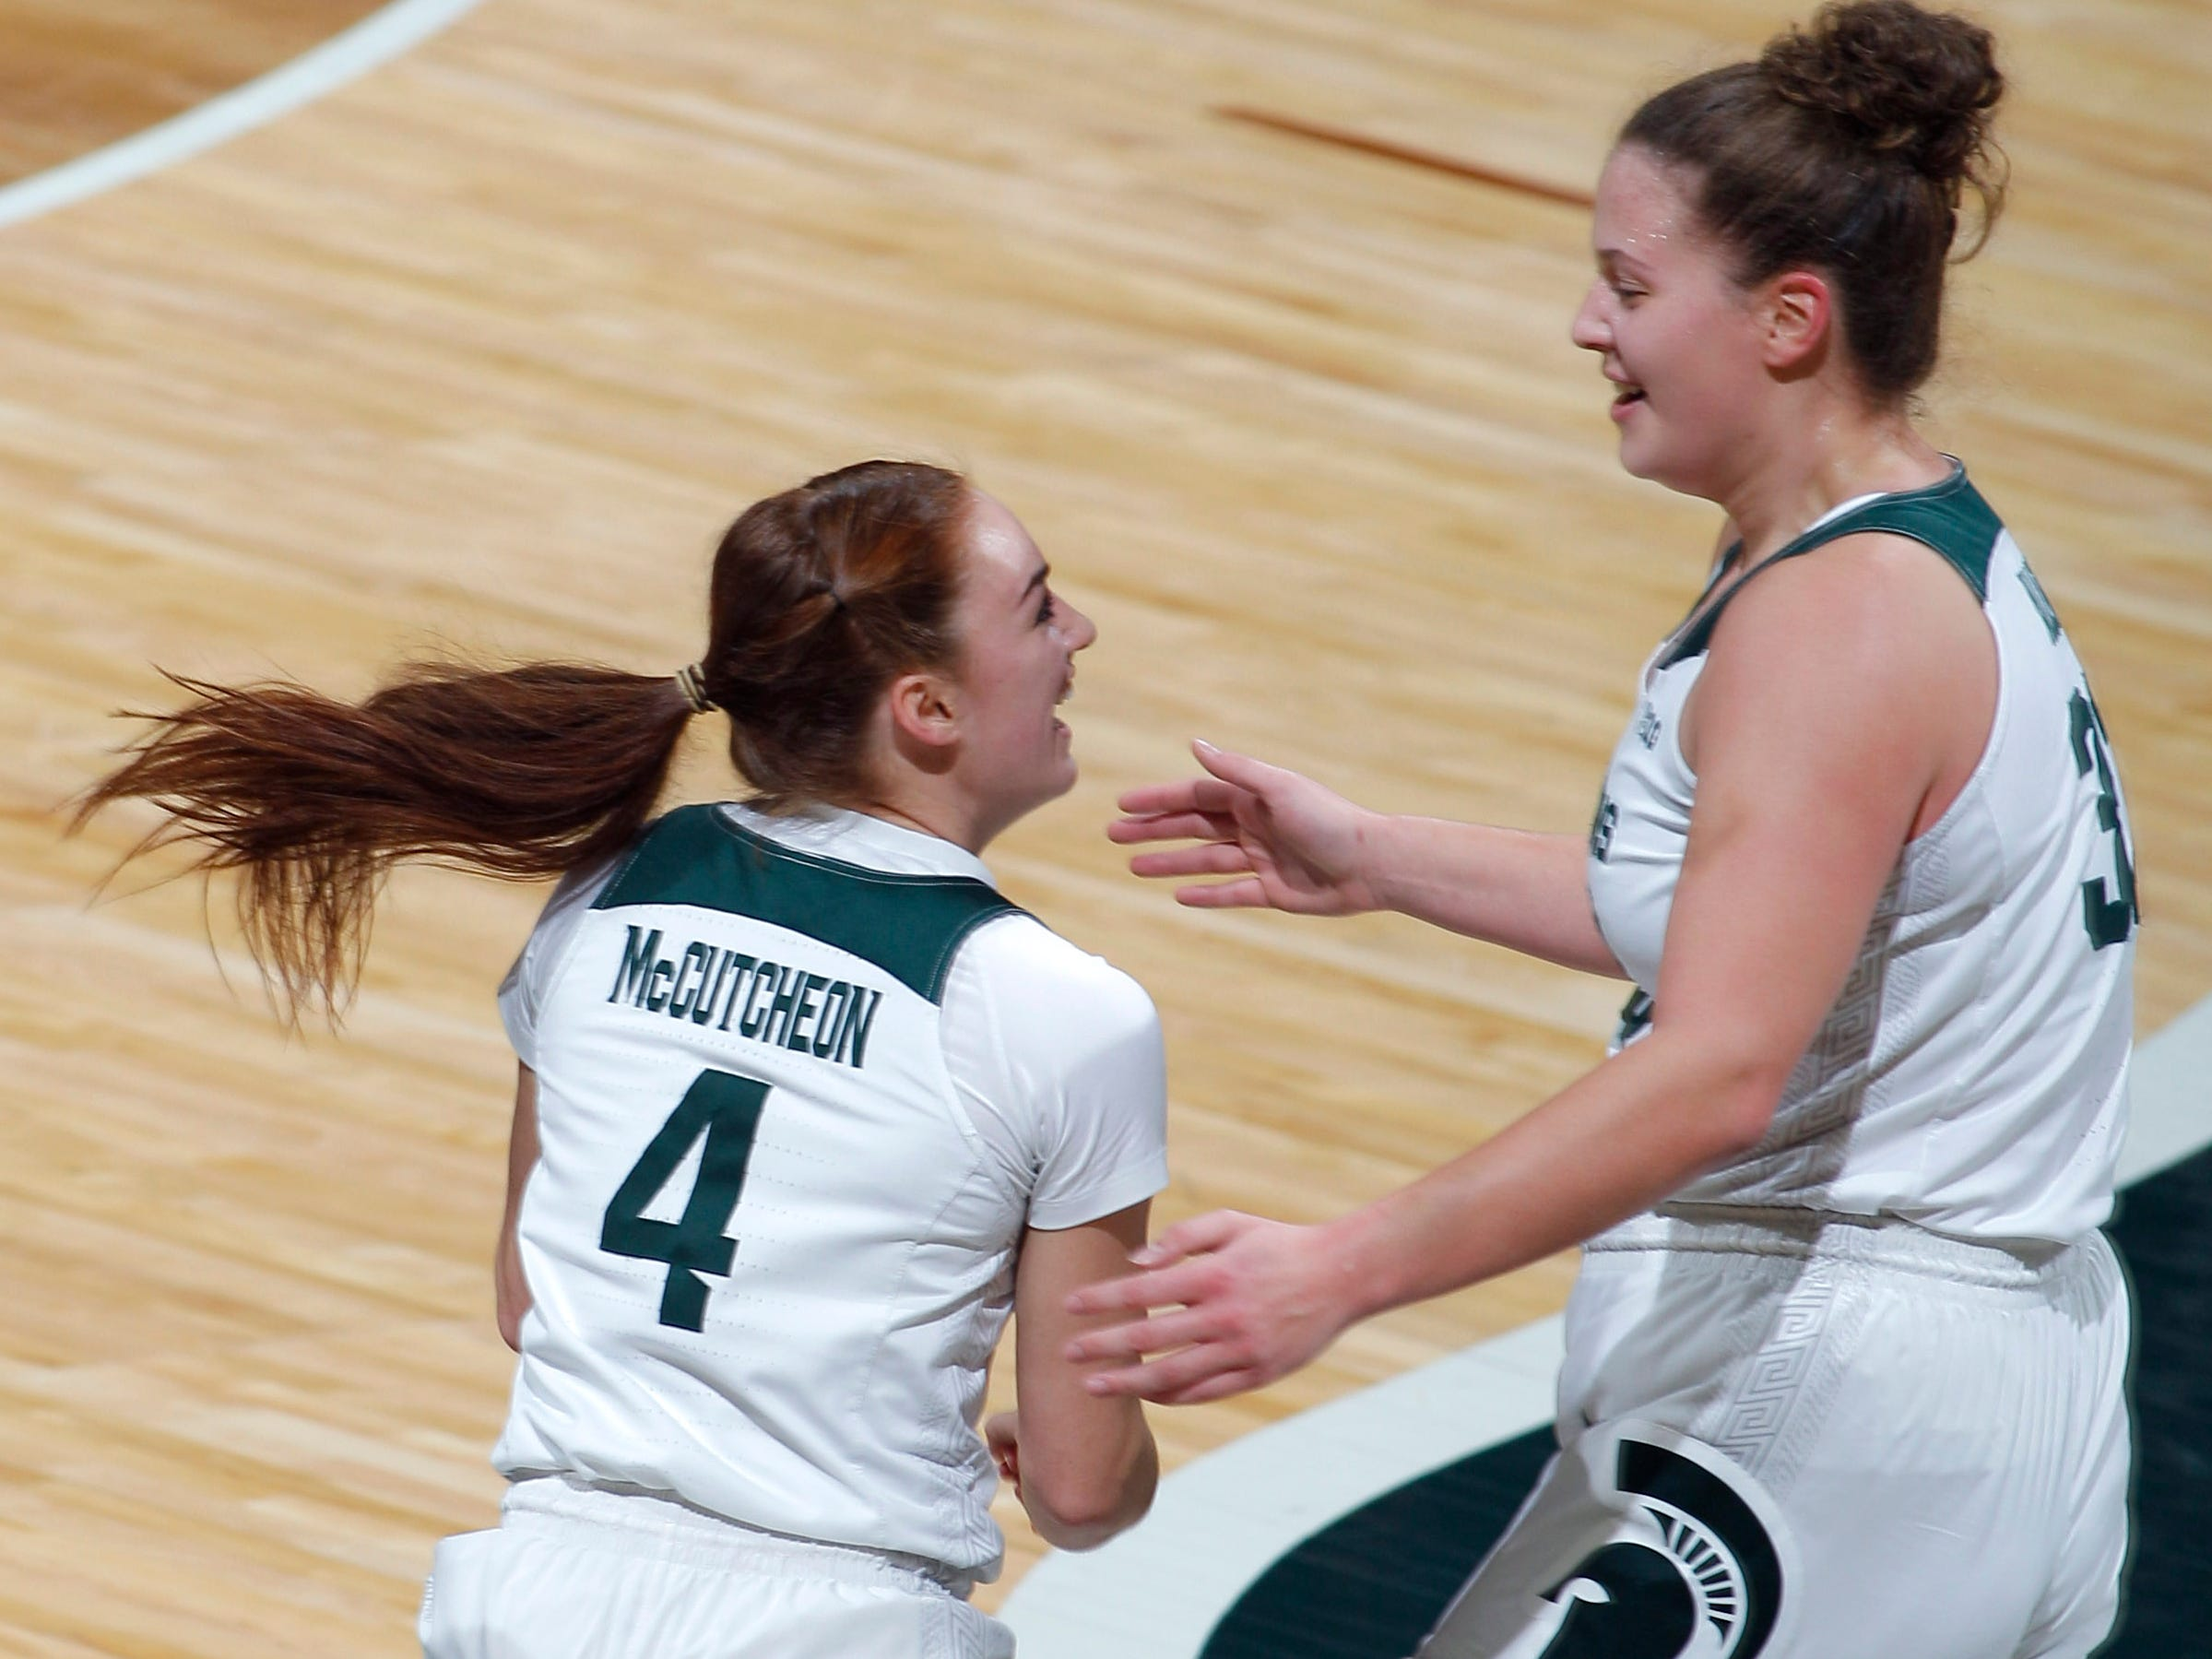 Michigan State's Taryn McCutcheon, left, and Jenna Allen celebrate against Maryland, Thursday, Jan. 17, 2019, in East Lansing, Mich.